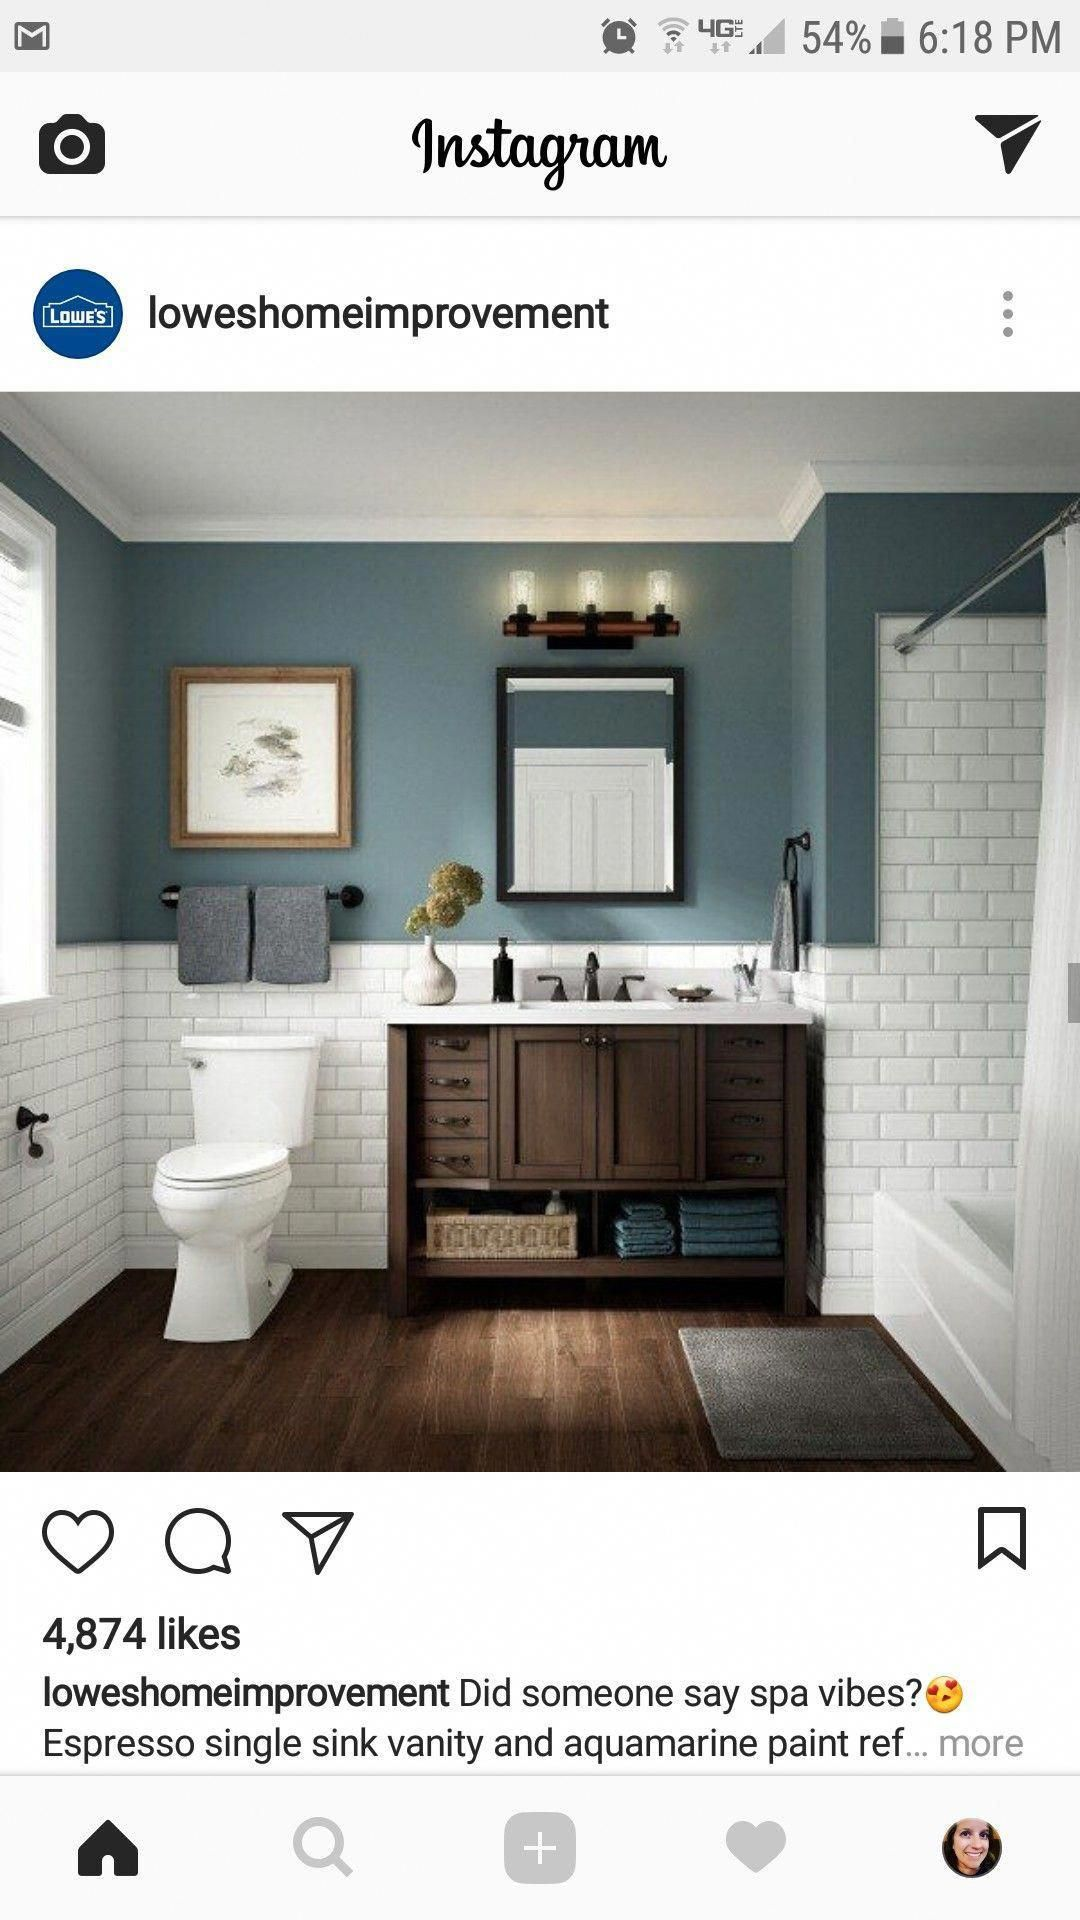 Pin By Kris On Home Decore Bathroom Interior Design Bathroom Interior Bathroom Design